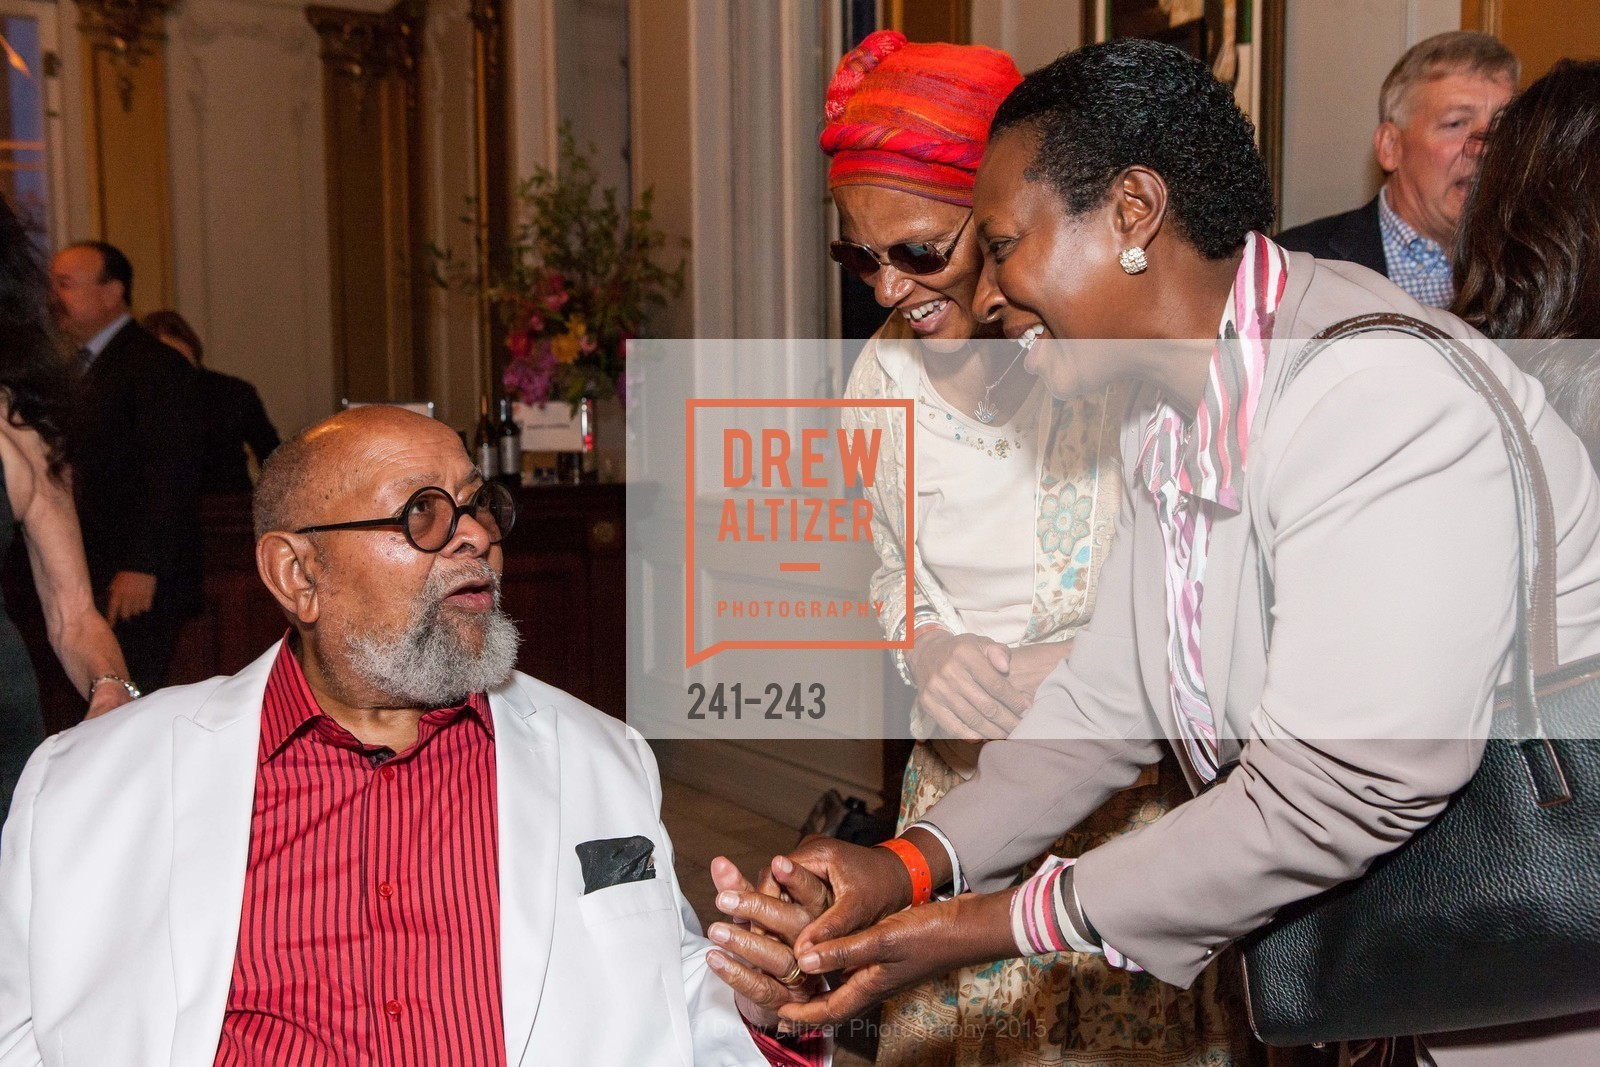 Cecil Williams, Rosemarie, Fafi Wa Nairobi, 6TH ANNUAL GLIDE LEGACY GALA, The Regency Ballroom. 1300 Van Ness Ave, August 22nd, 2015,Drew Altizer, Drew Altizer Photography, full-service agency, private events, San Francisco photographer, photographer california